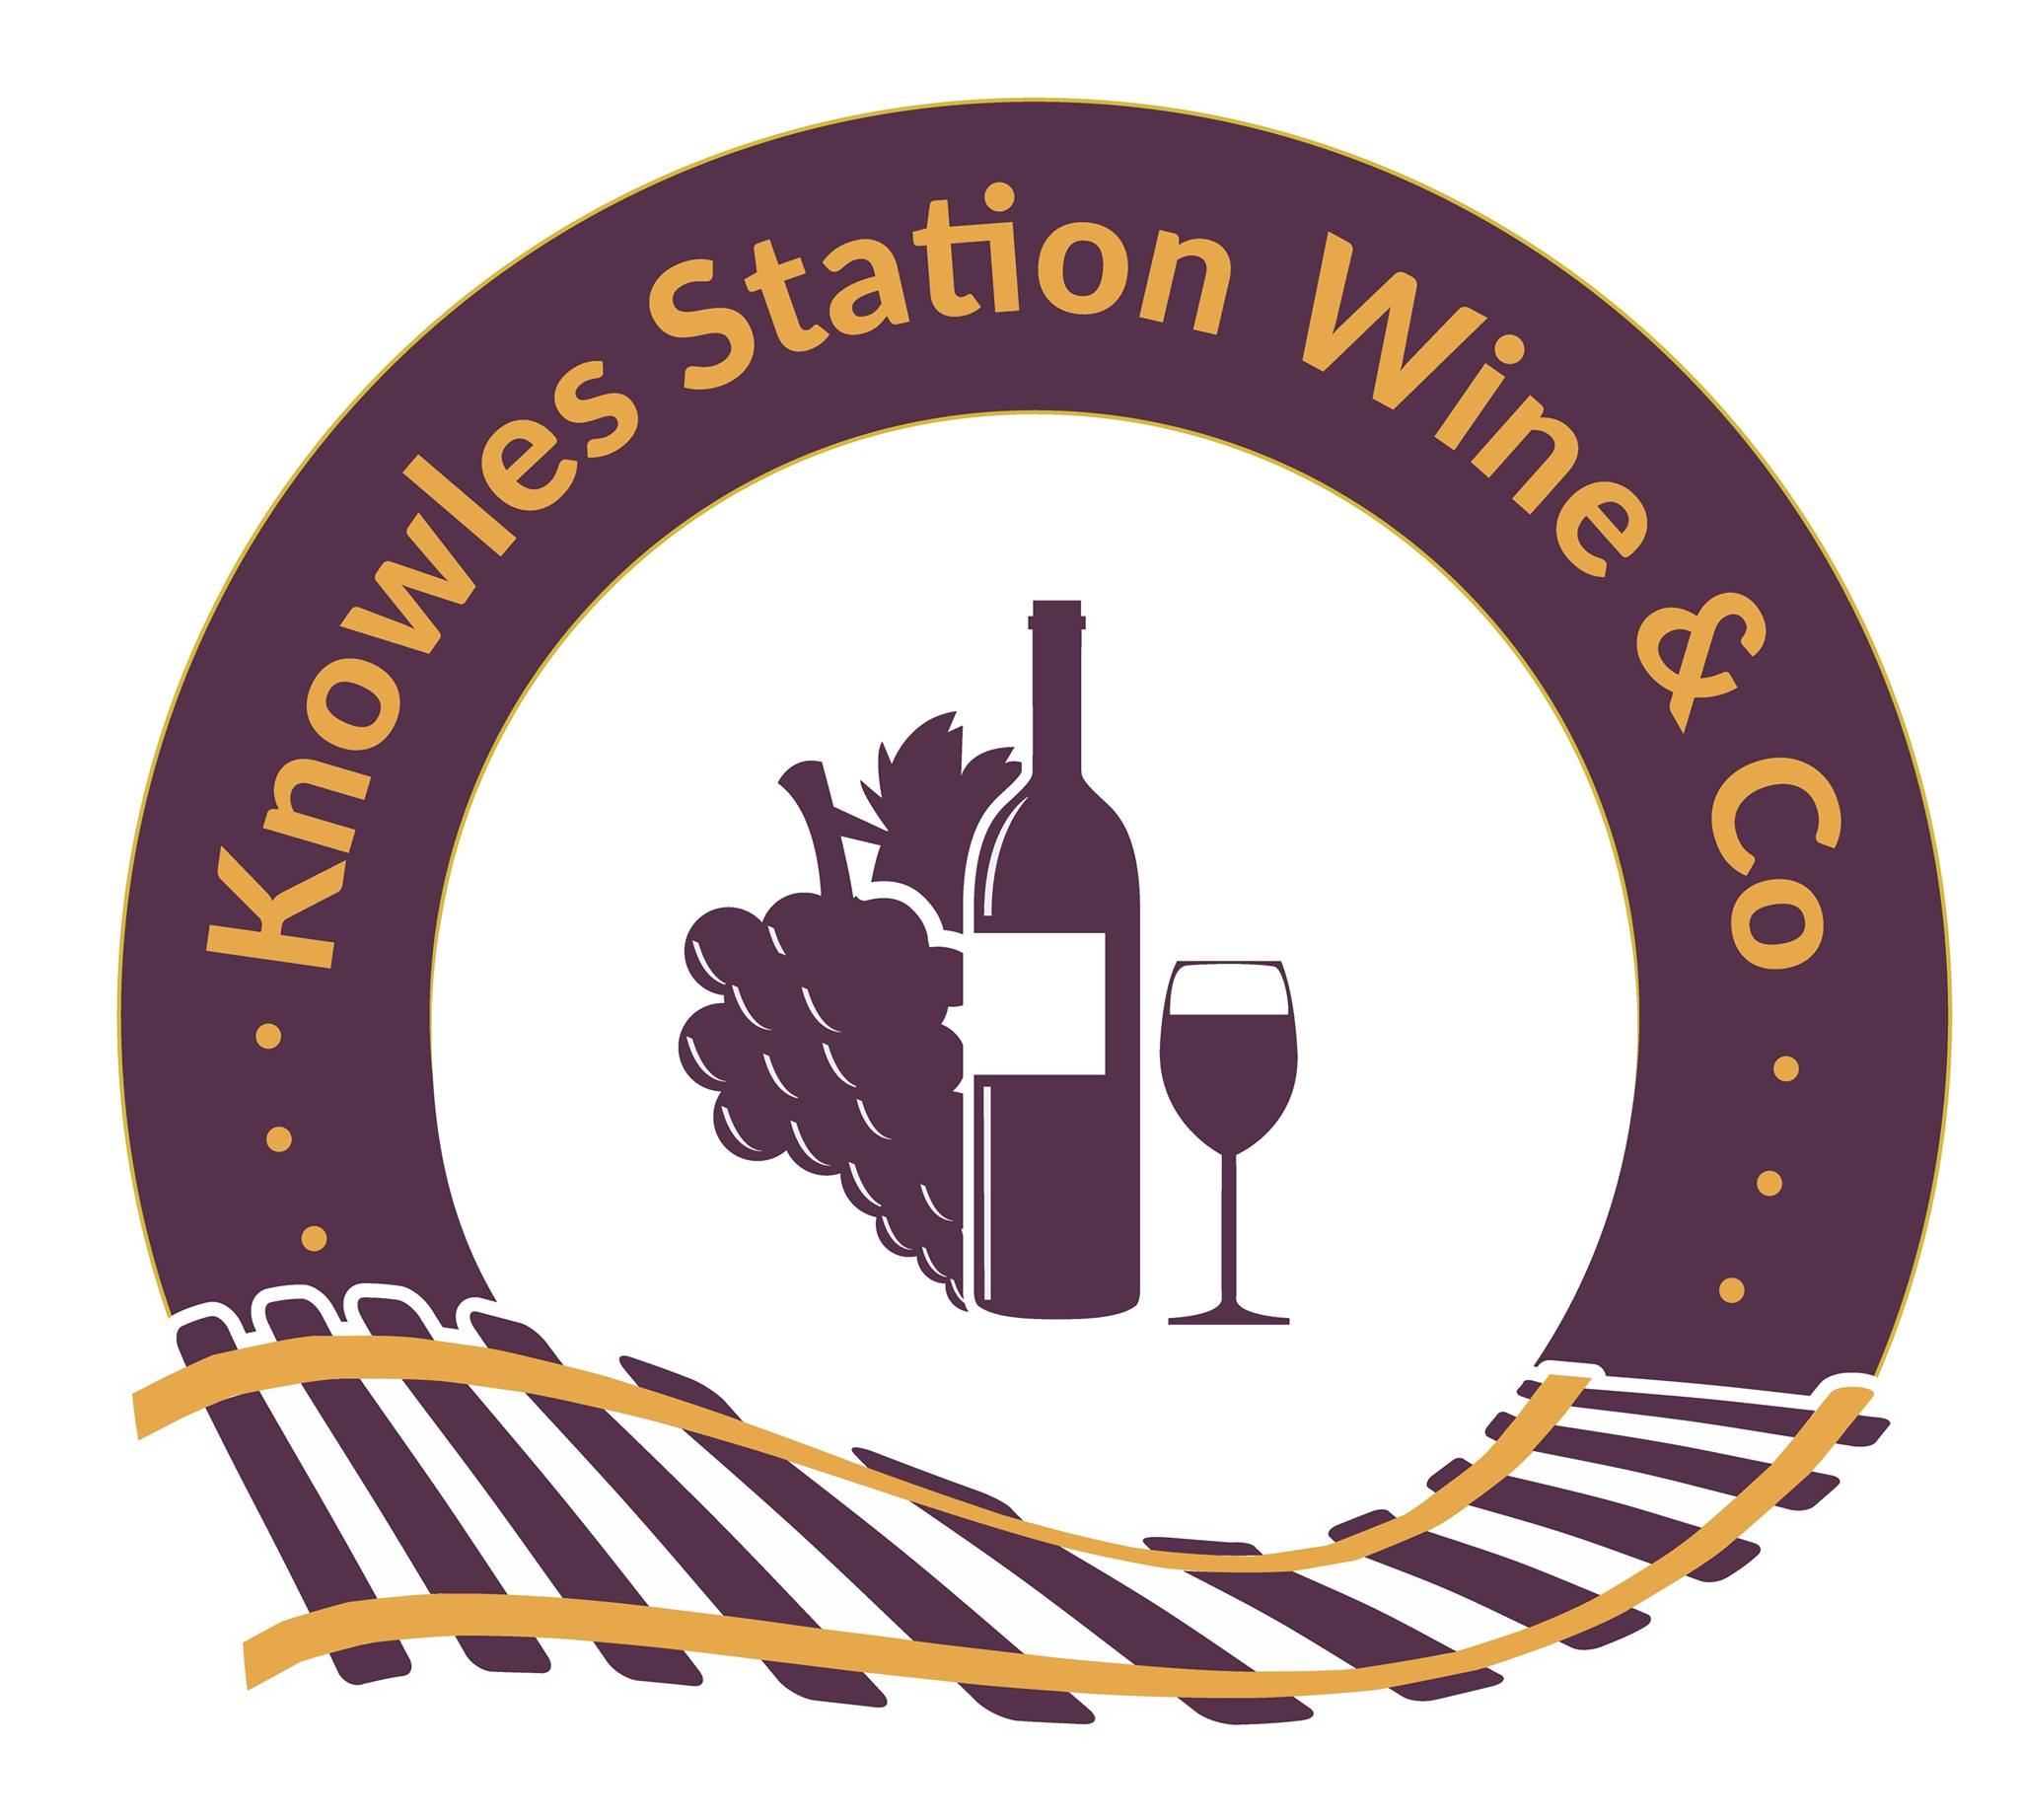 Knowles Station Wine & Co.